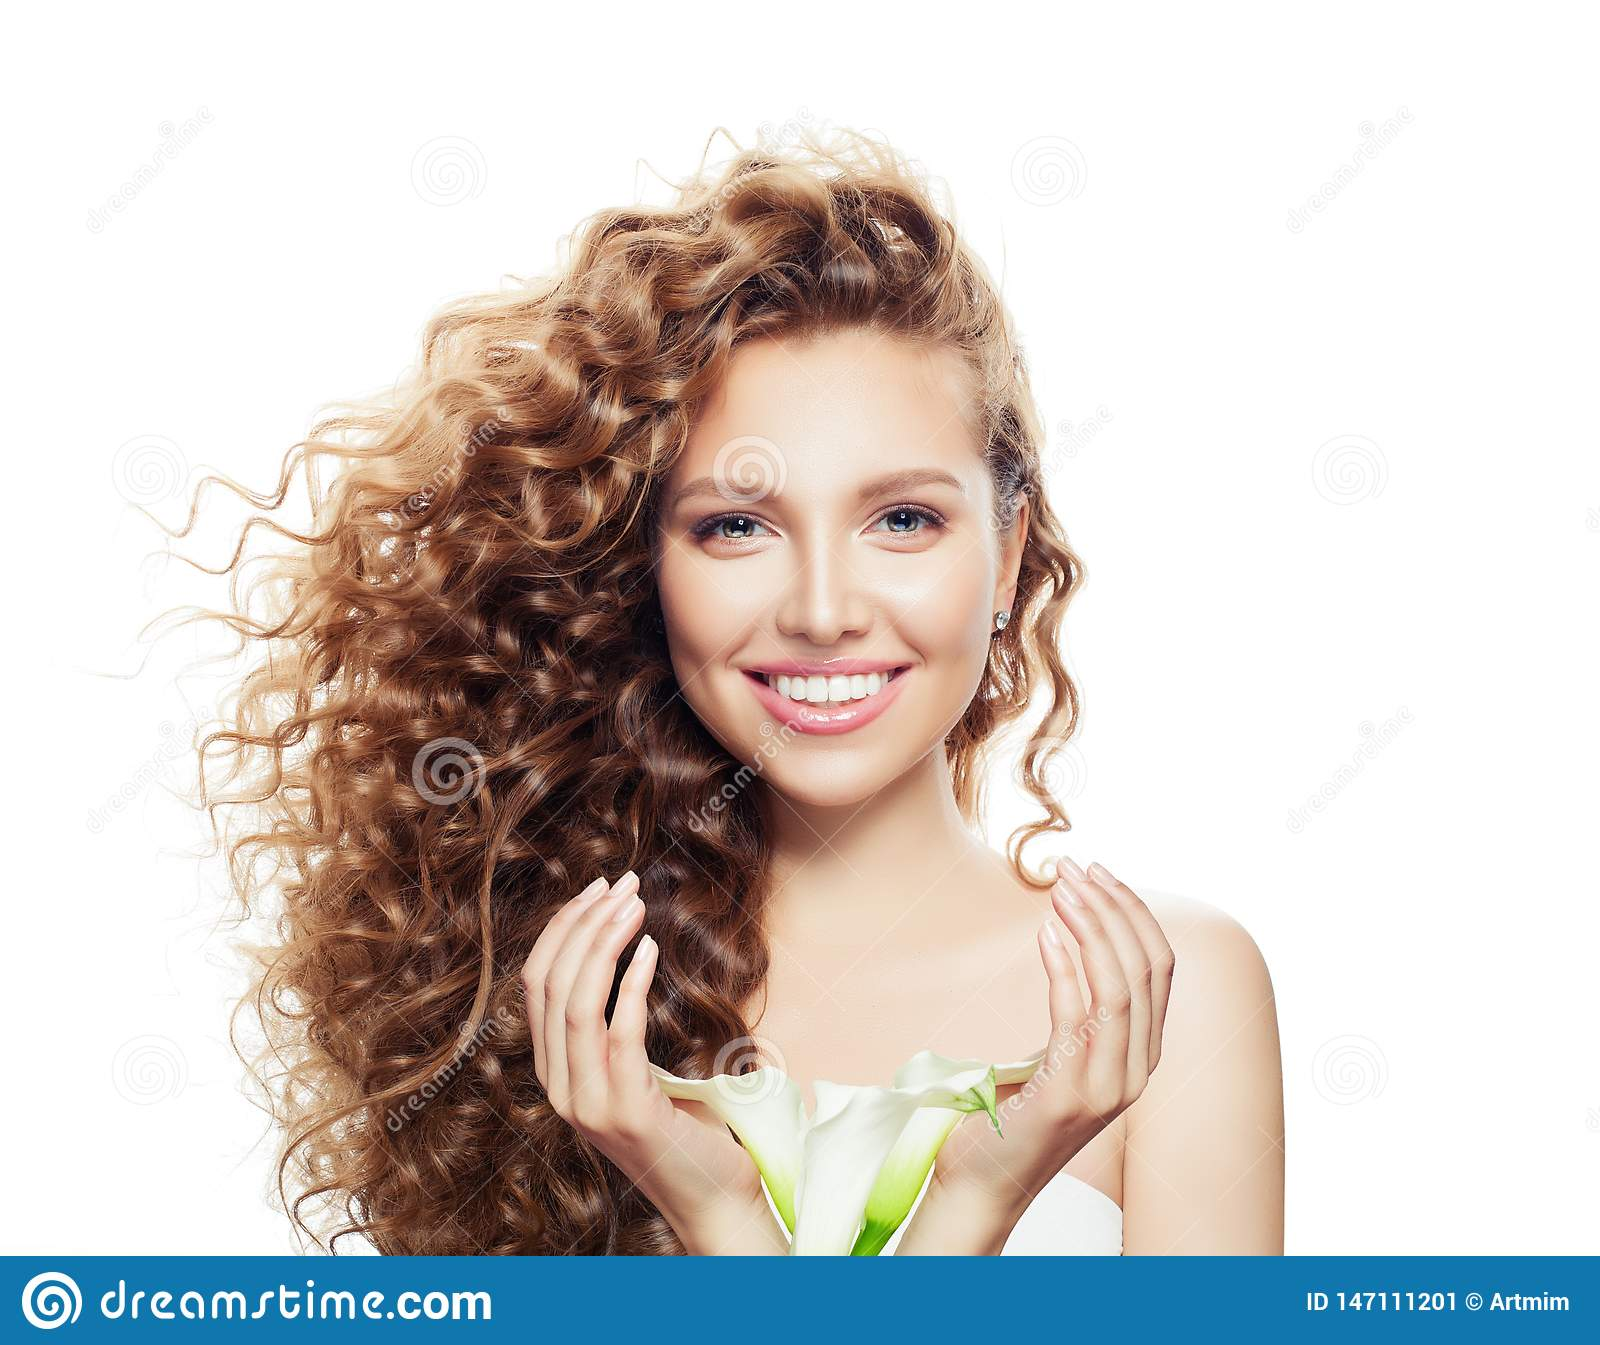 Smiling woman with long curly hair isolated on white. Beautiful model with clear skin and flowers in hands portrait